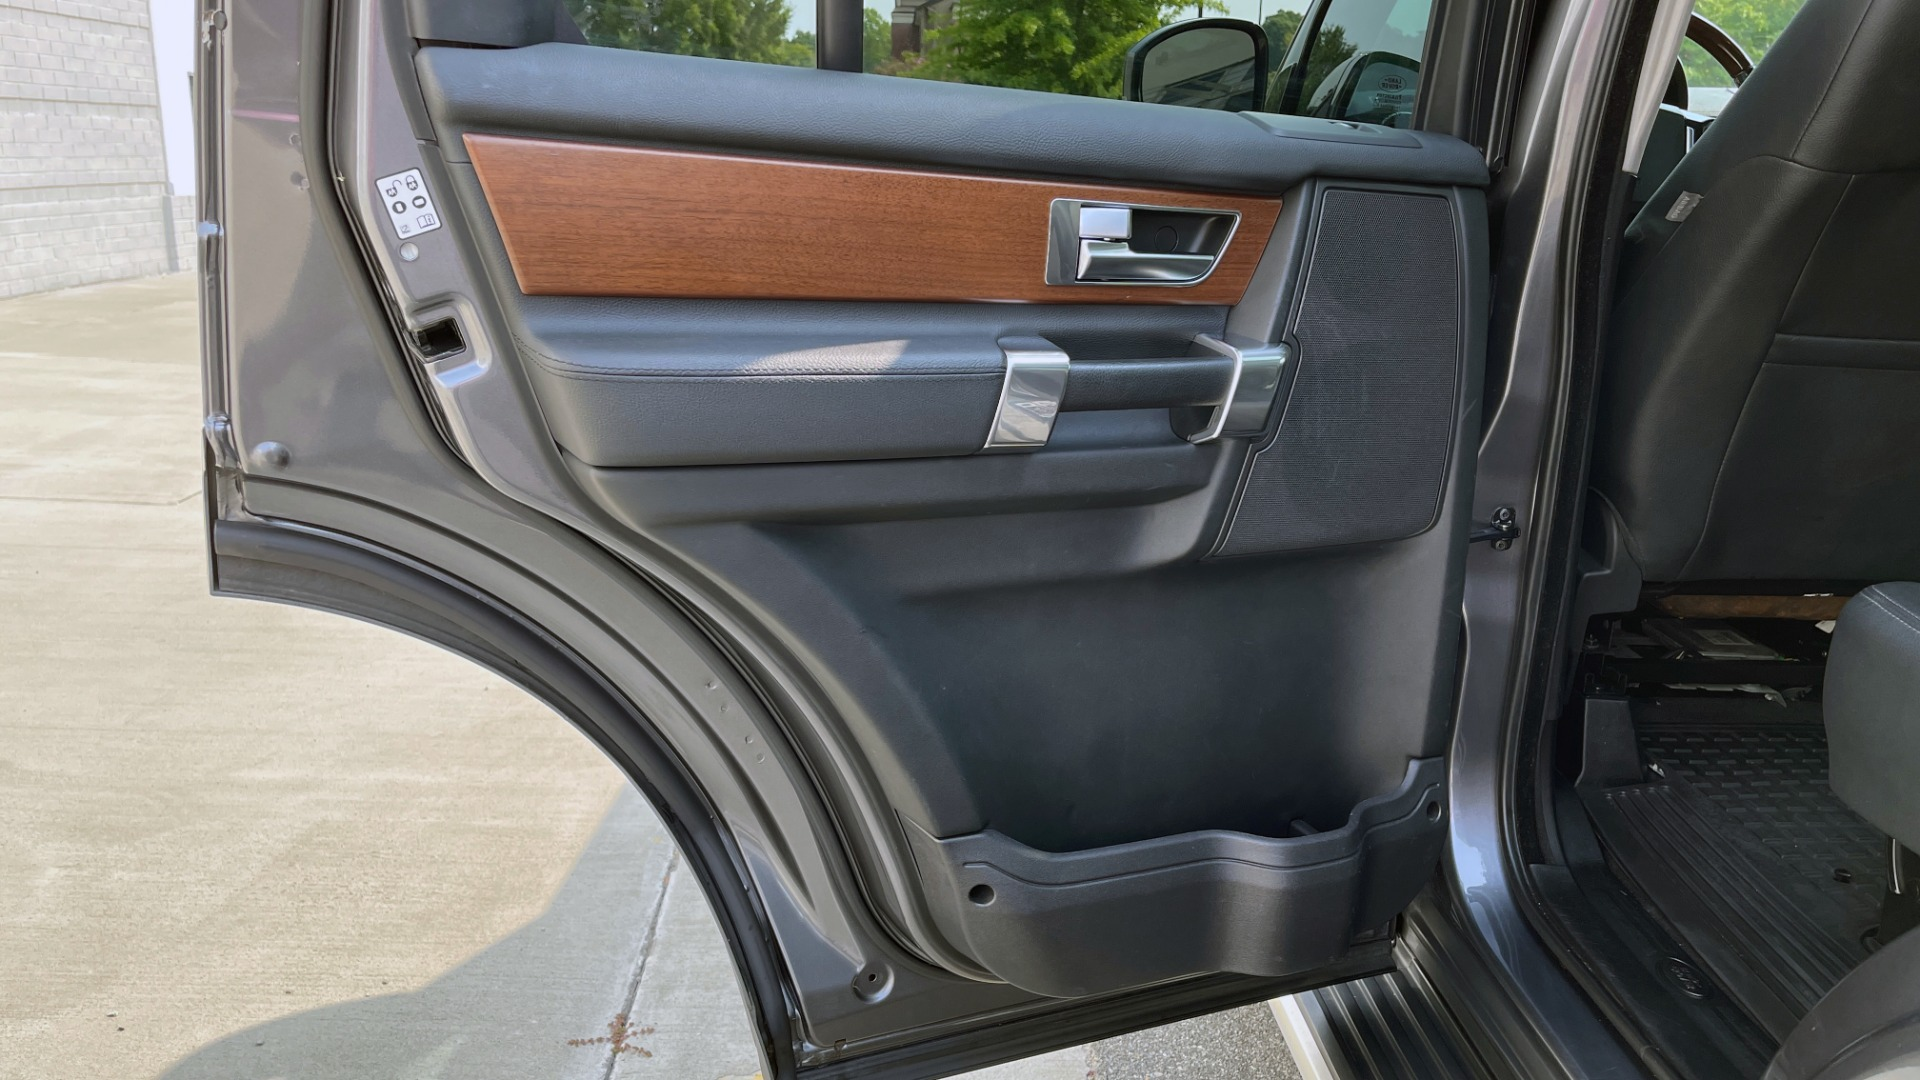 Used 2016 Land Rover LR4 HSE / NAV / SUNROOF / 3-ROW / MERIDIAN SOUND SYS / REARVIEW for sale $30,995 at Formula Imports in Charlotte NC 28227 40